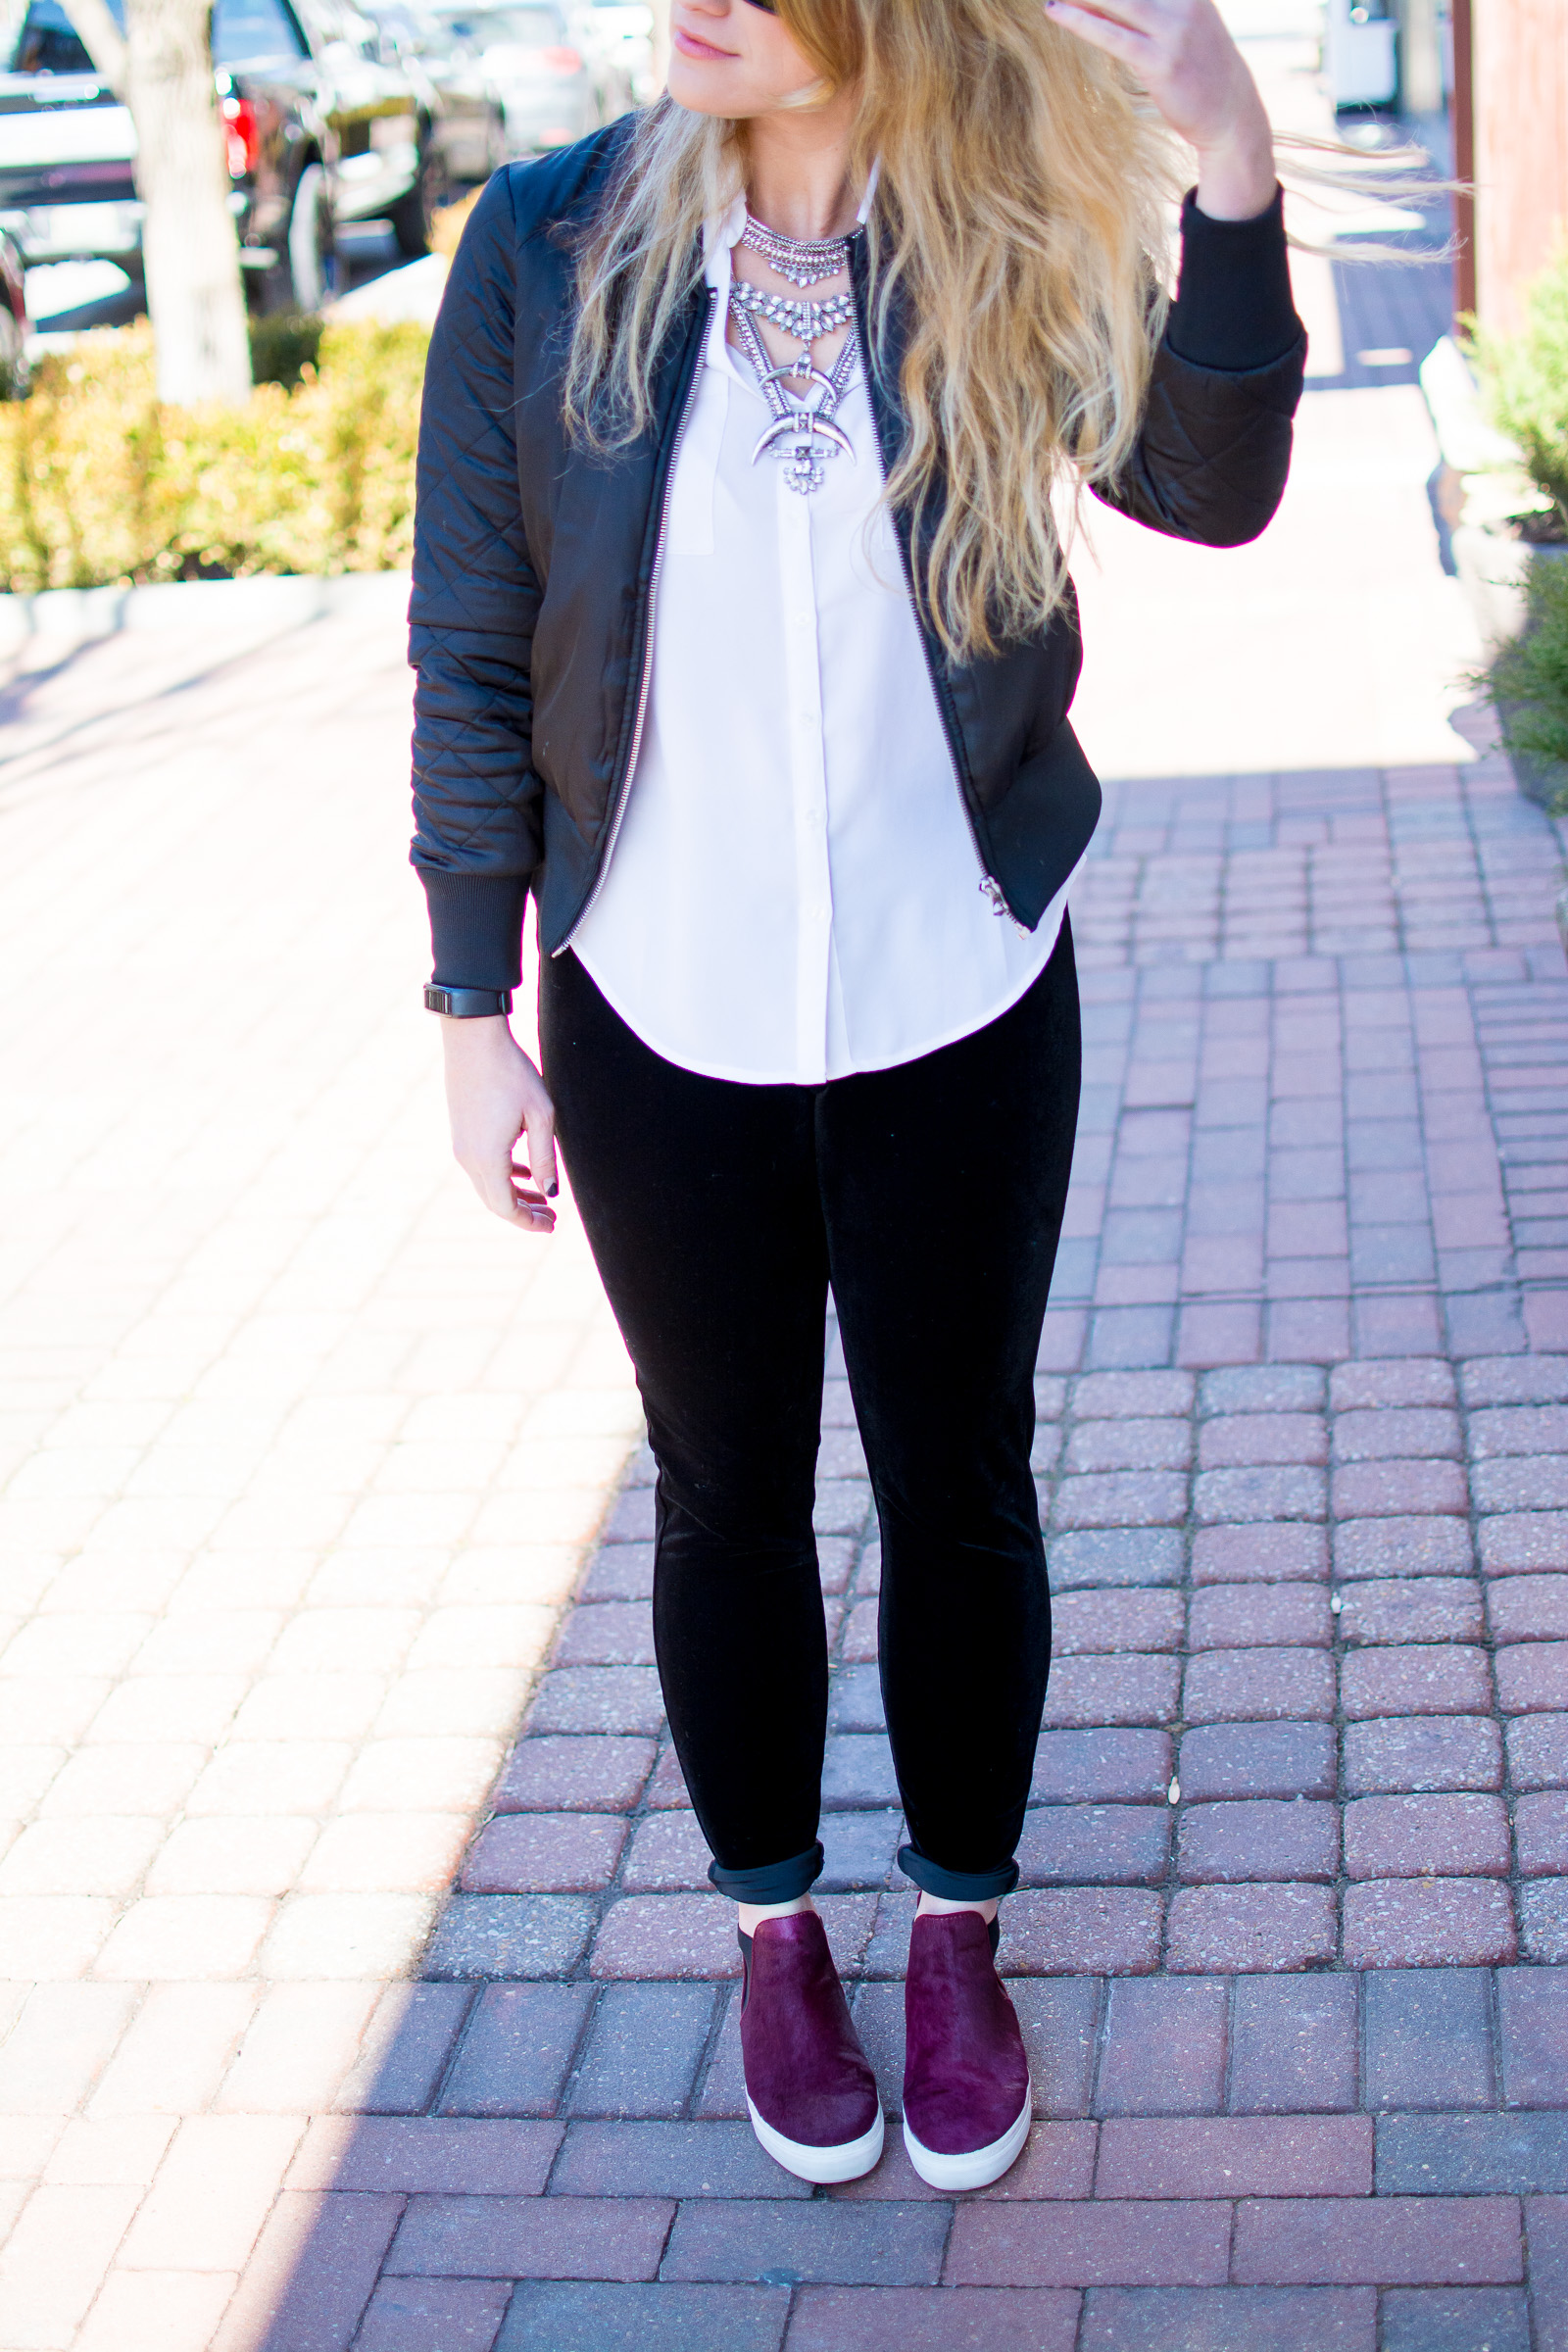 Ashley from LSR in velvet leggings, a satin bomber jacket, sneakers, and a statement necklace for a casual valentine's day outfit